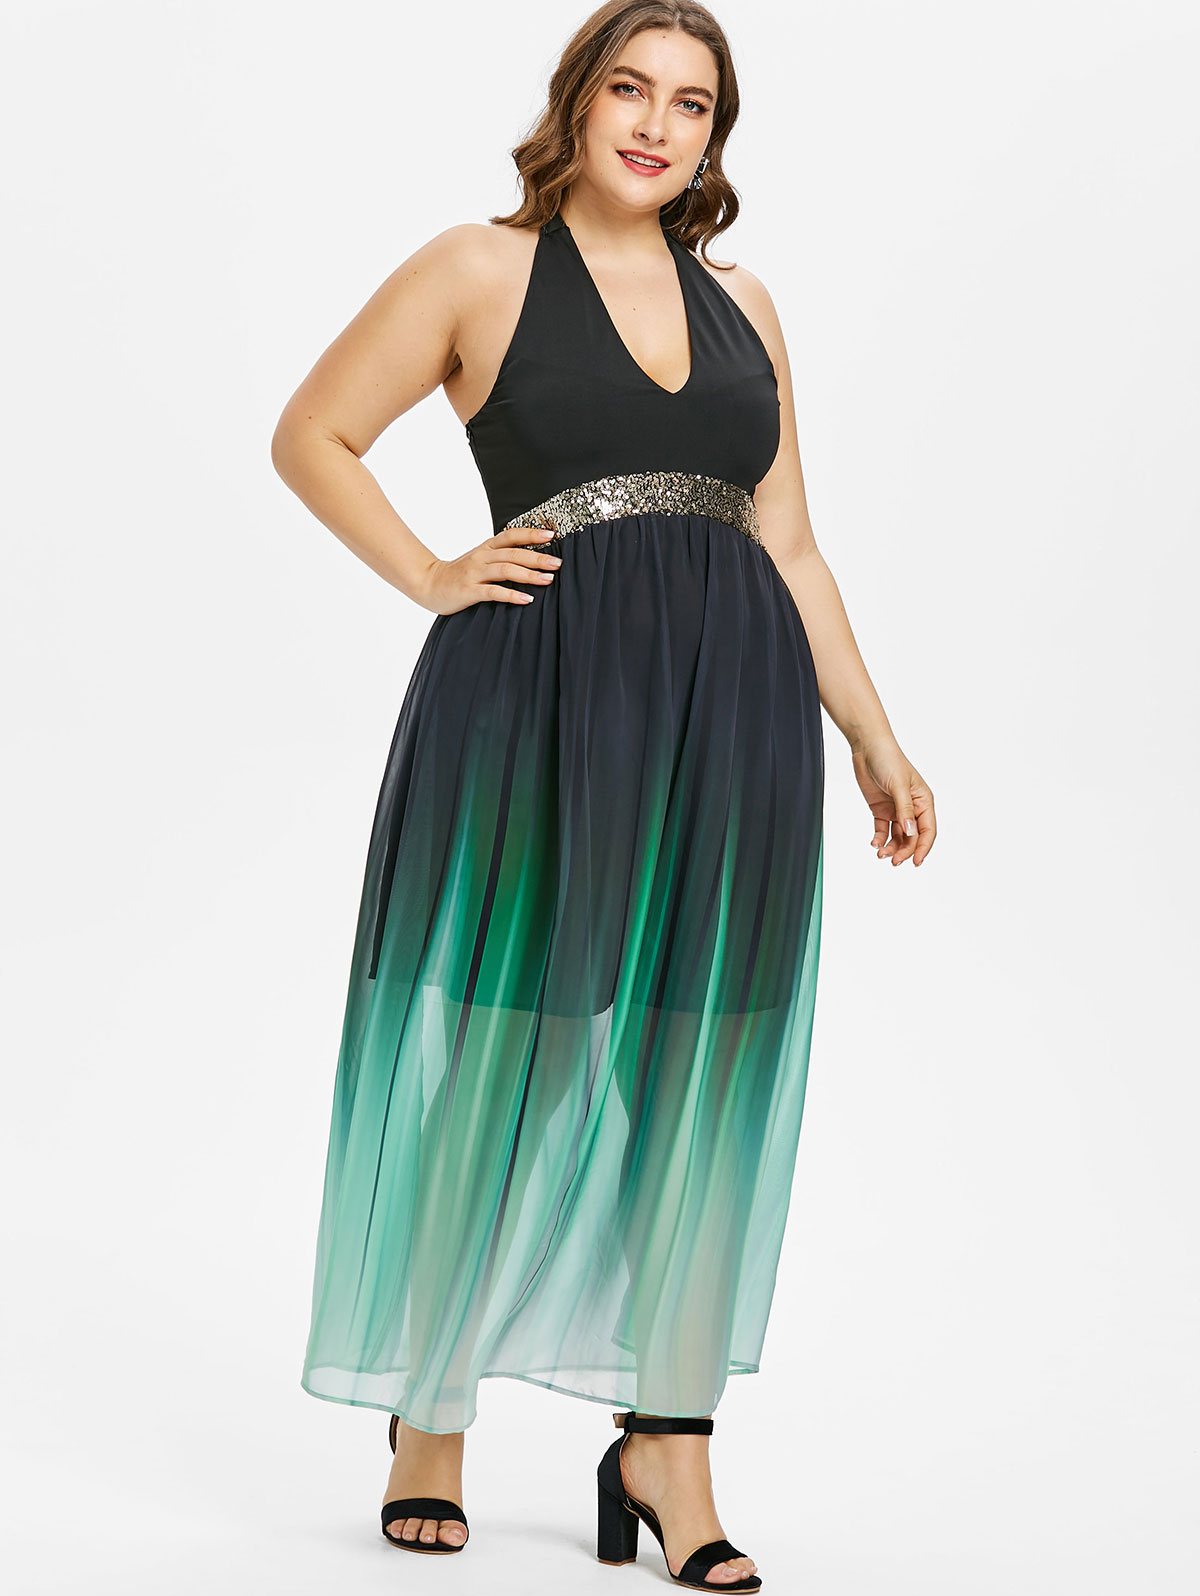 US $42.68 |Wipalo Plus Size Halter Neck Women Open Back Sequined Trim Ombre  Maxi Dress Sleeveless A Line Dress Party Sundresses Vestidos-in Dresses ...